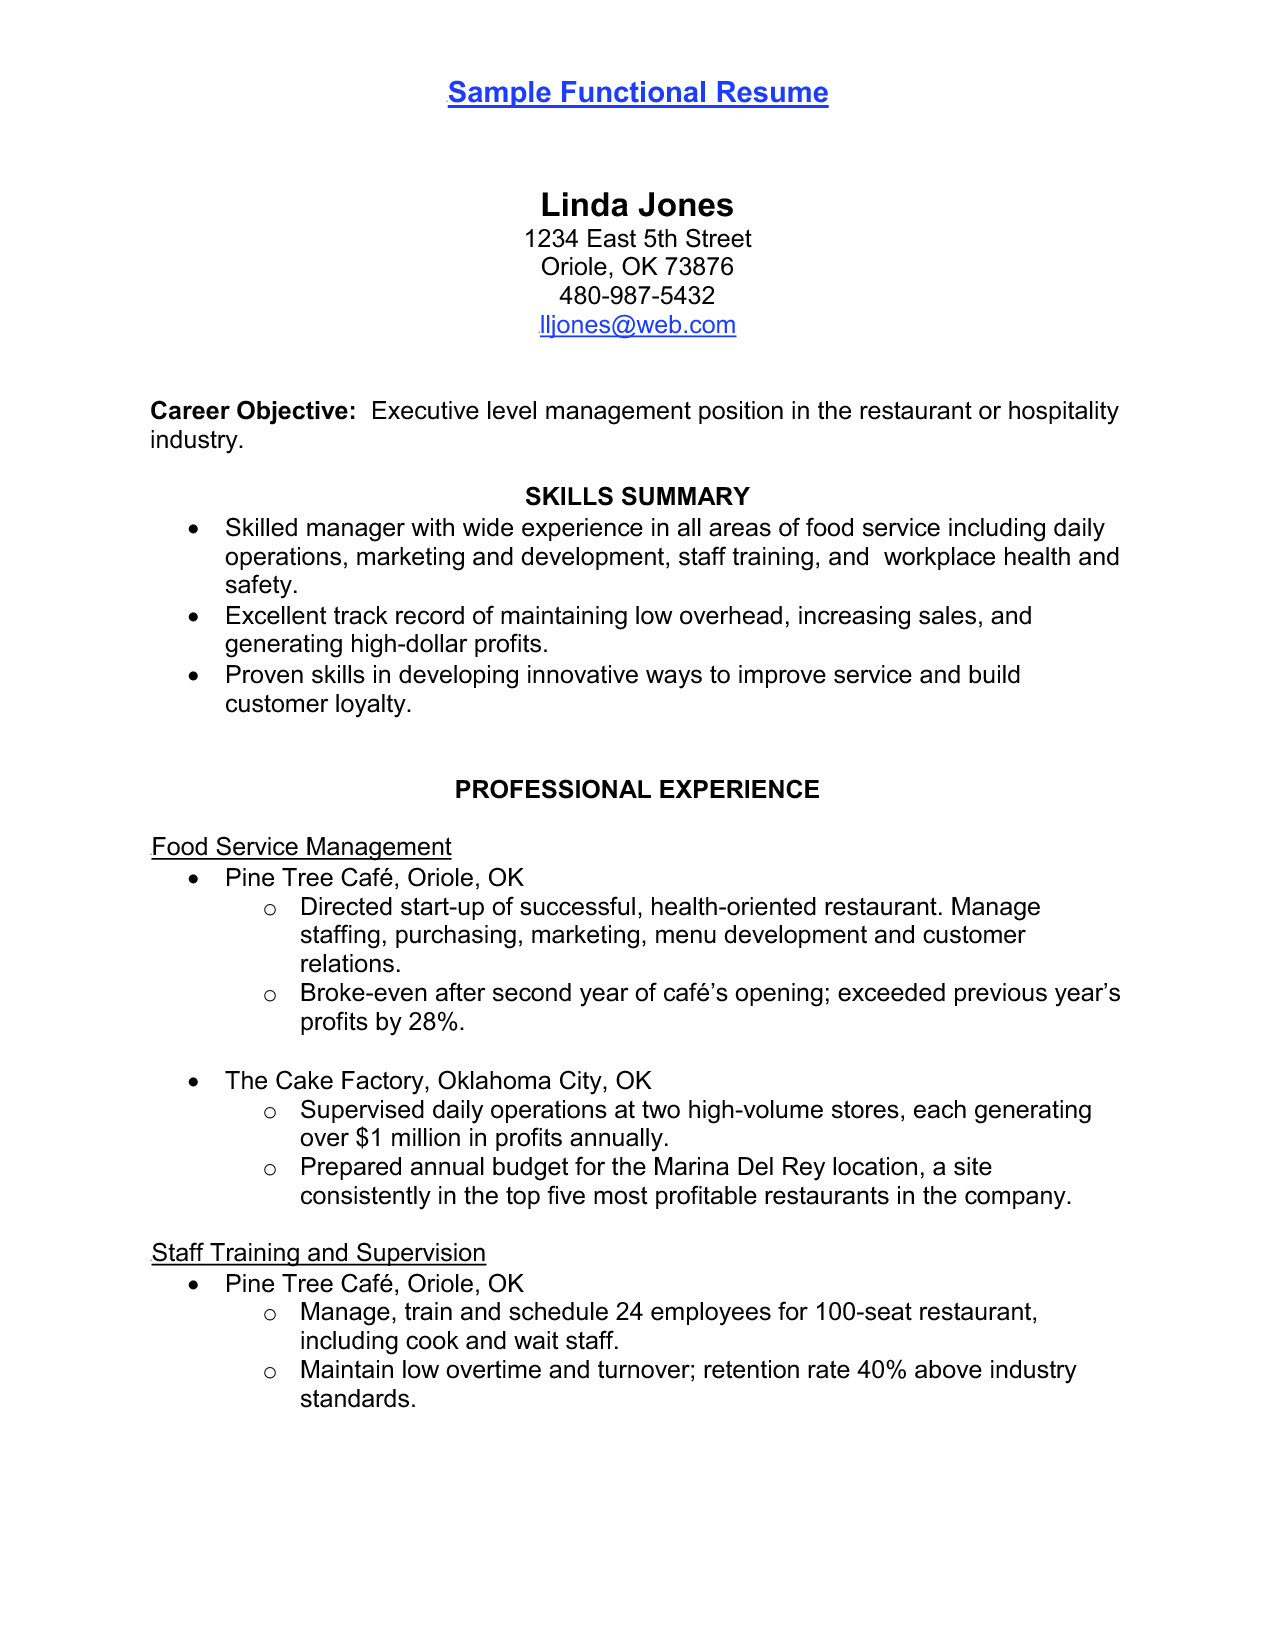 Cover Letter Examples Tamu Tamu Resume Template Project Scope Template